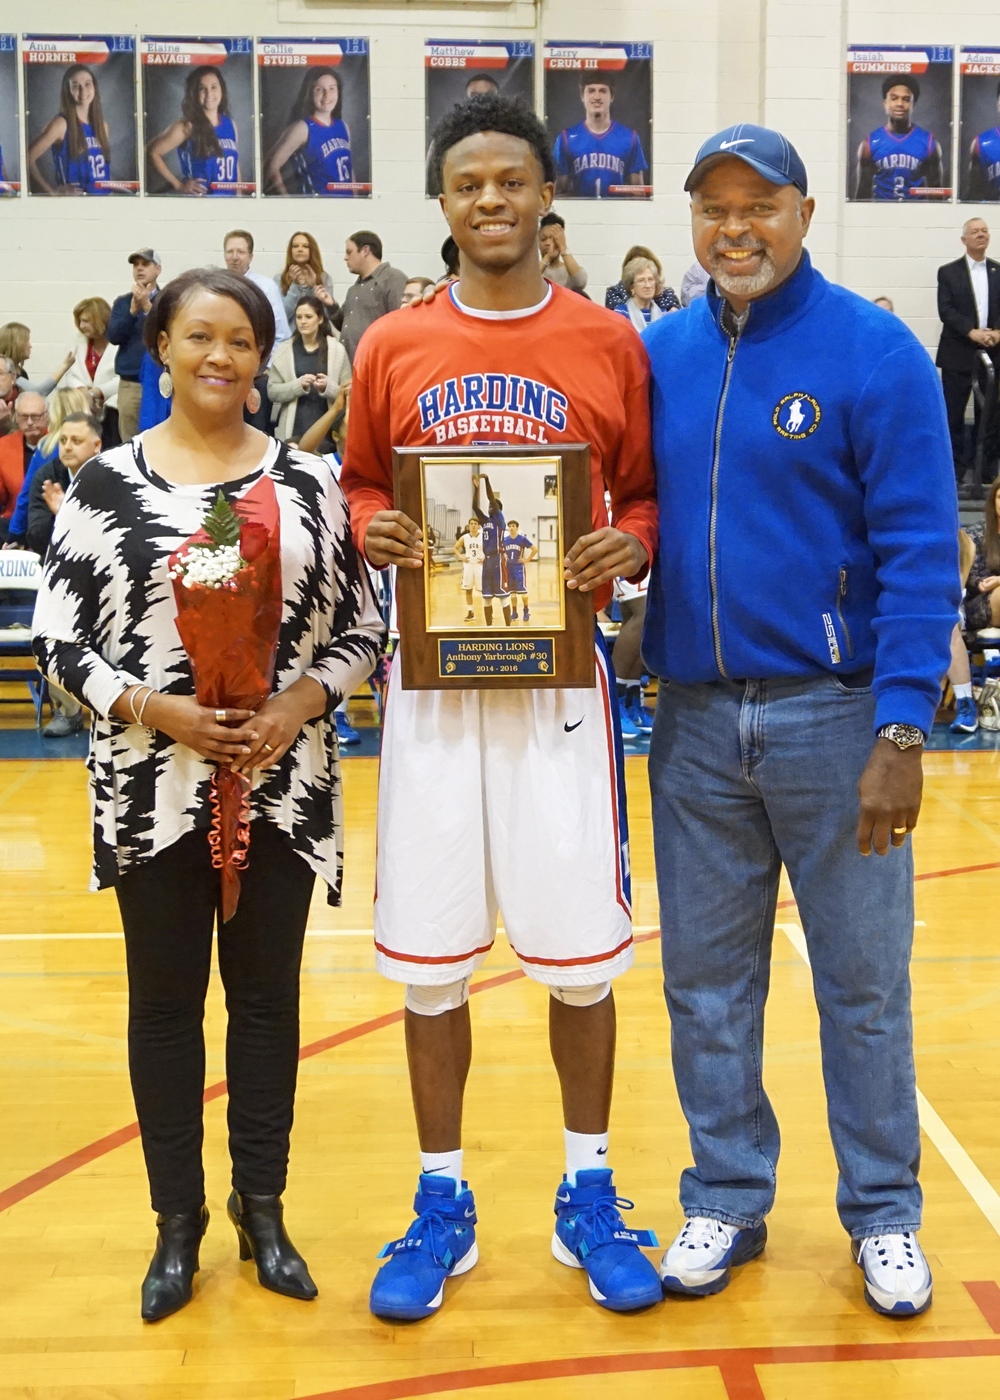 Feb12 SeniorNightBasketball15.jpg